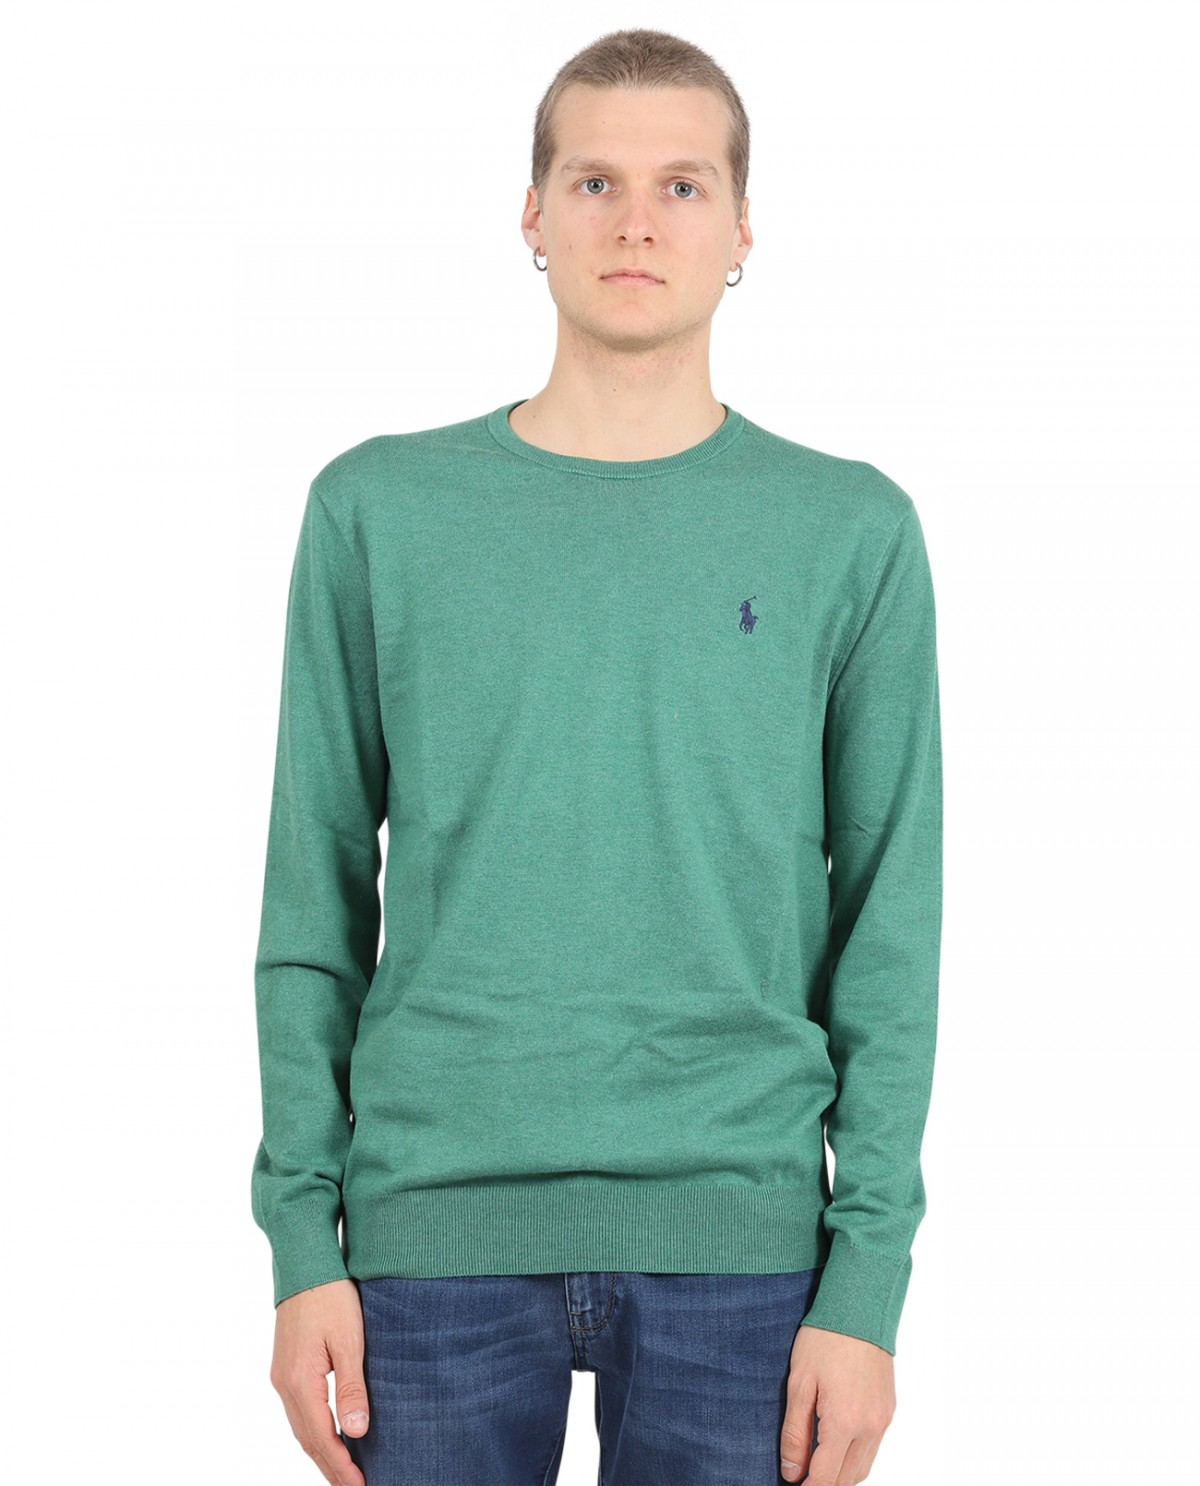 Polo Ralph Lauren green sweater